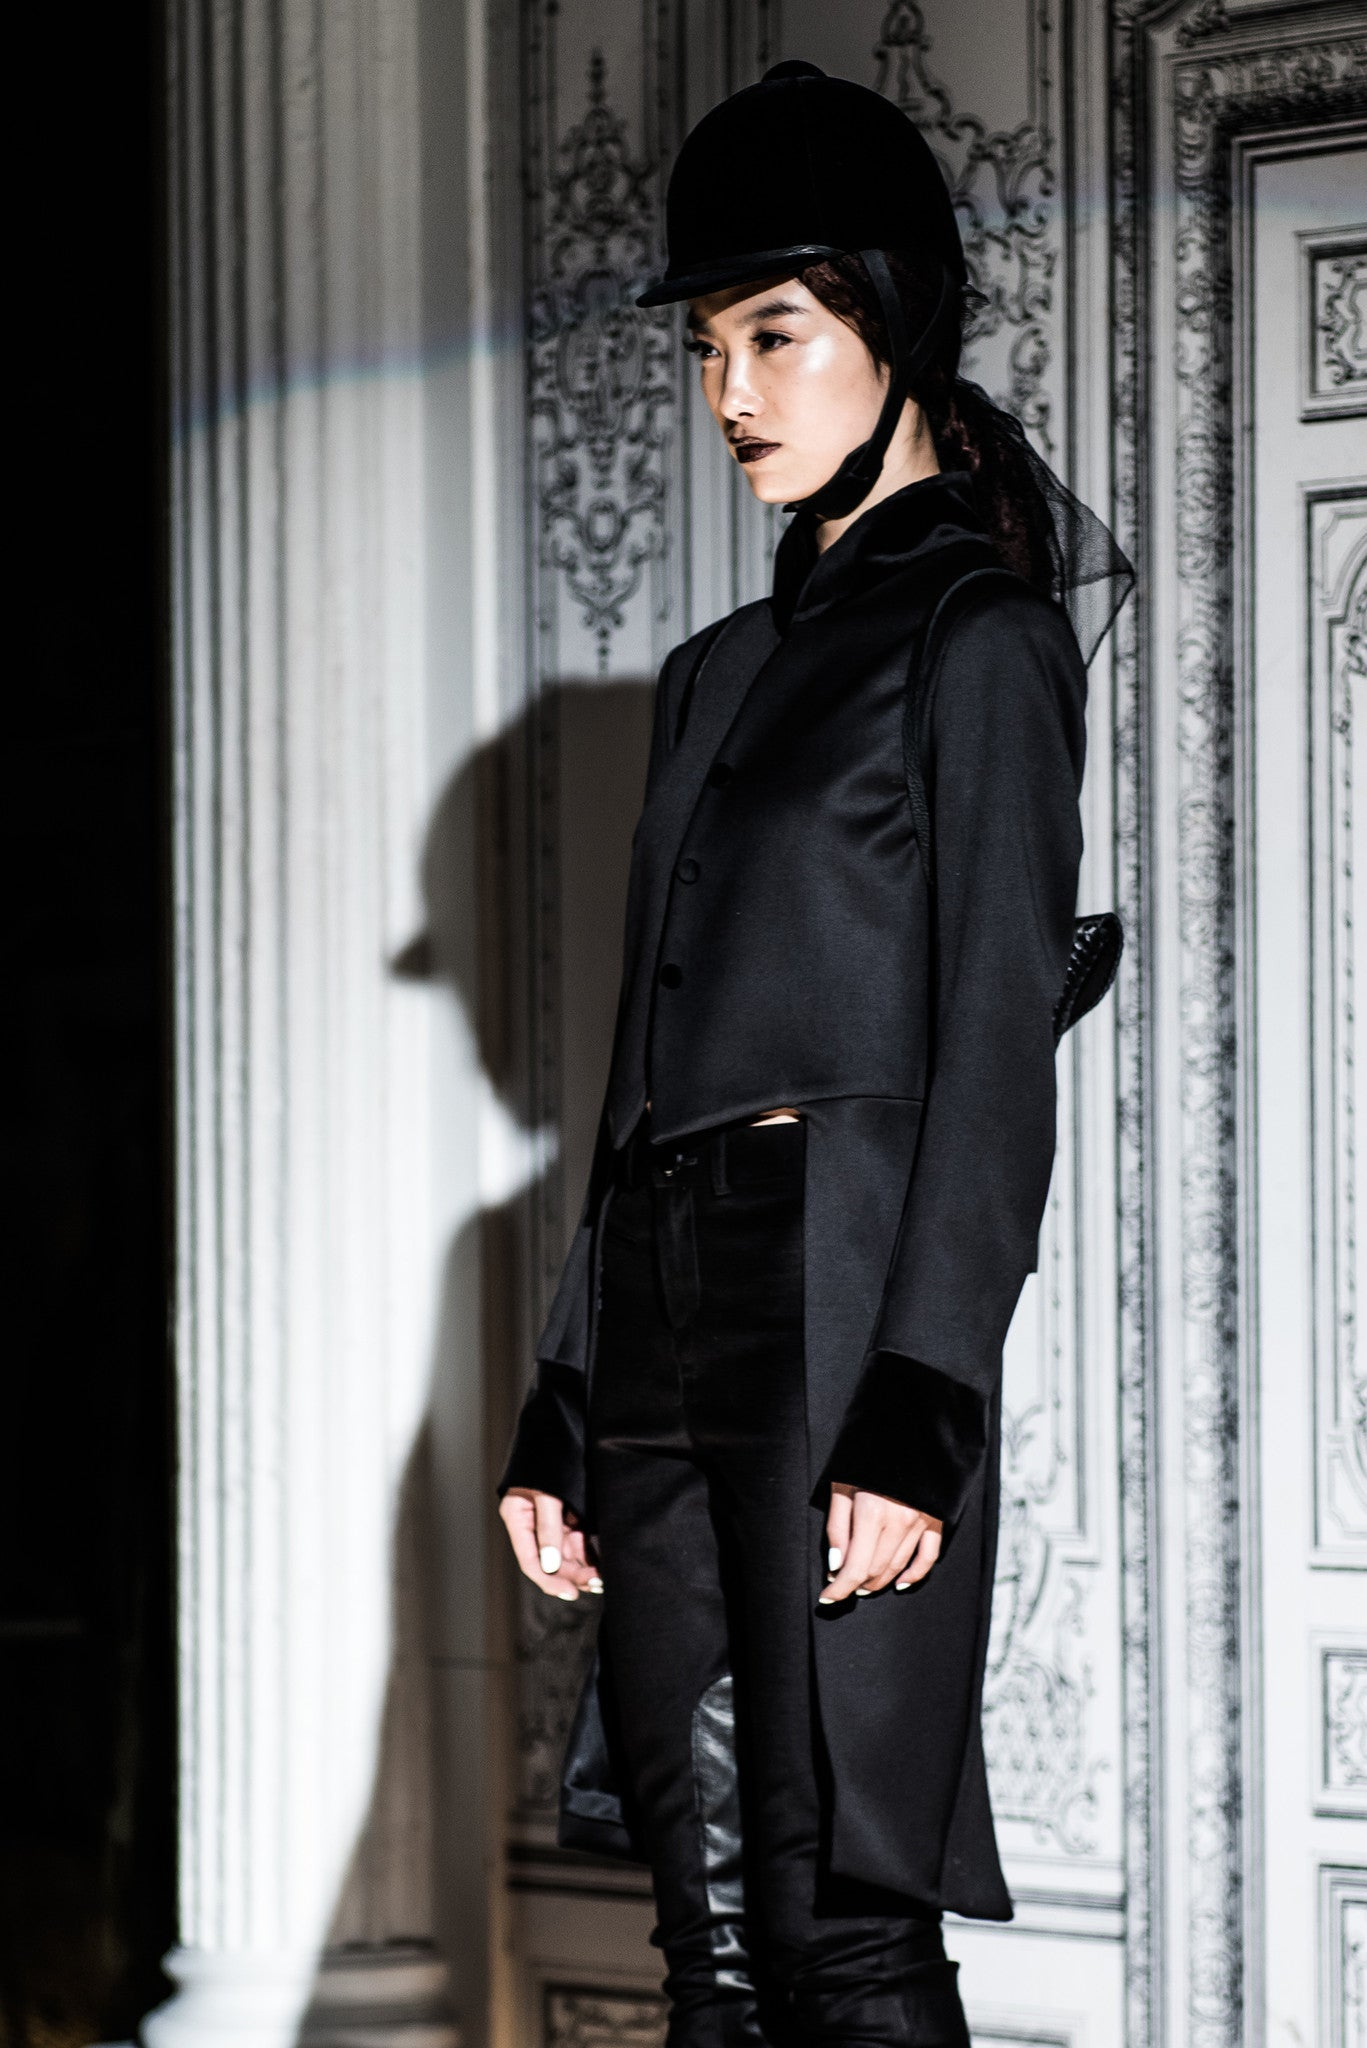 Wendy Nichol Fashion Runway Show Carl Jung The Hearo Riding Coat Wool velvet Collar & Riding Equestrian Pants  IMG Model Wendy Nichol Clothing Fashion Designer Handmade in NYC AW14 Ready to Wear Fashion Runway Show Custom Tailoring Made to Measure